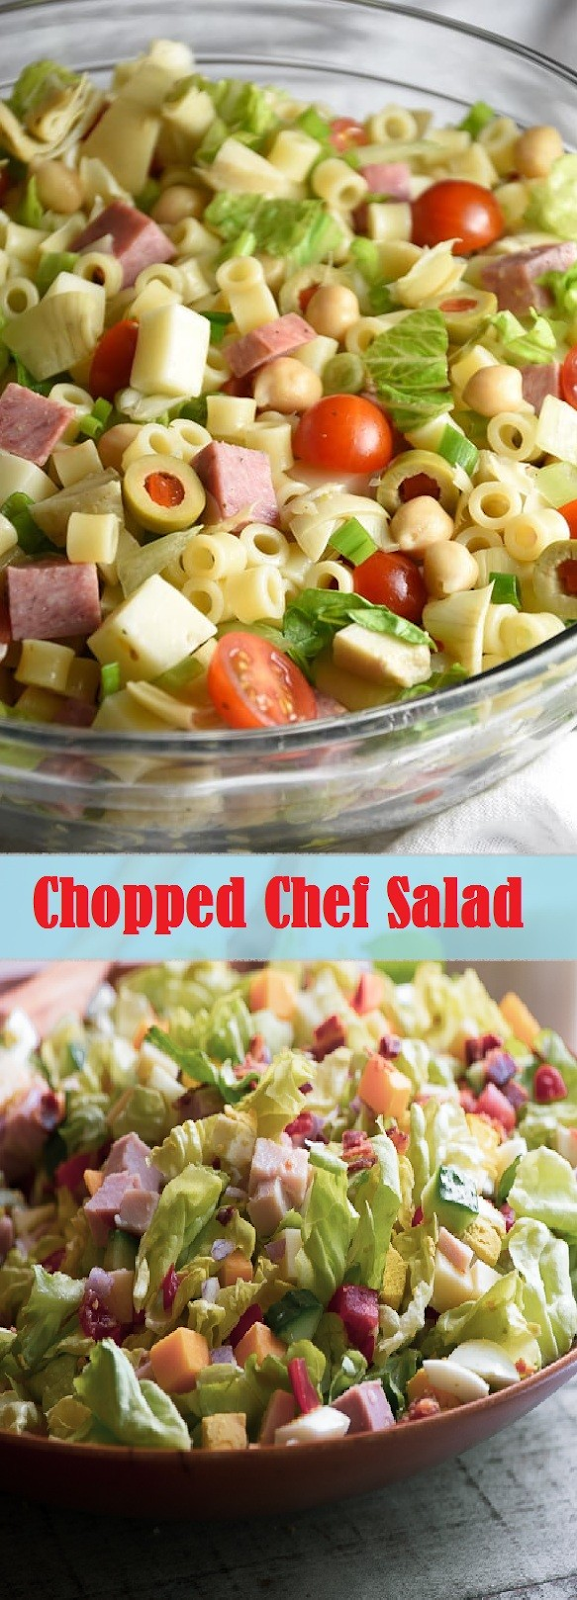 Chopped Chef Salad